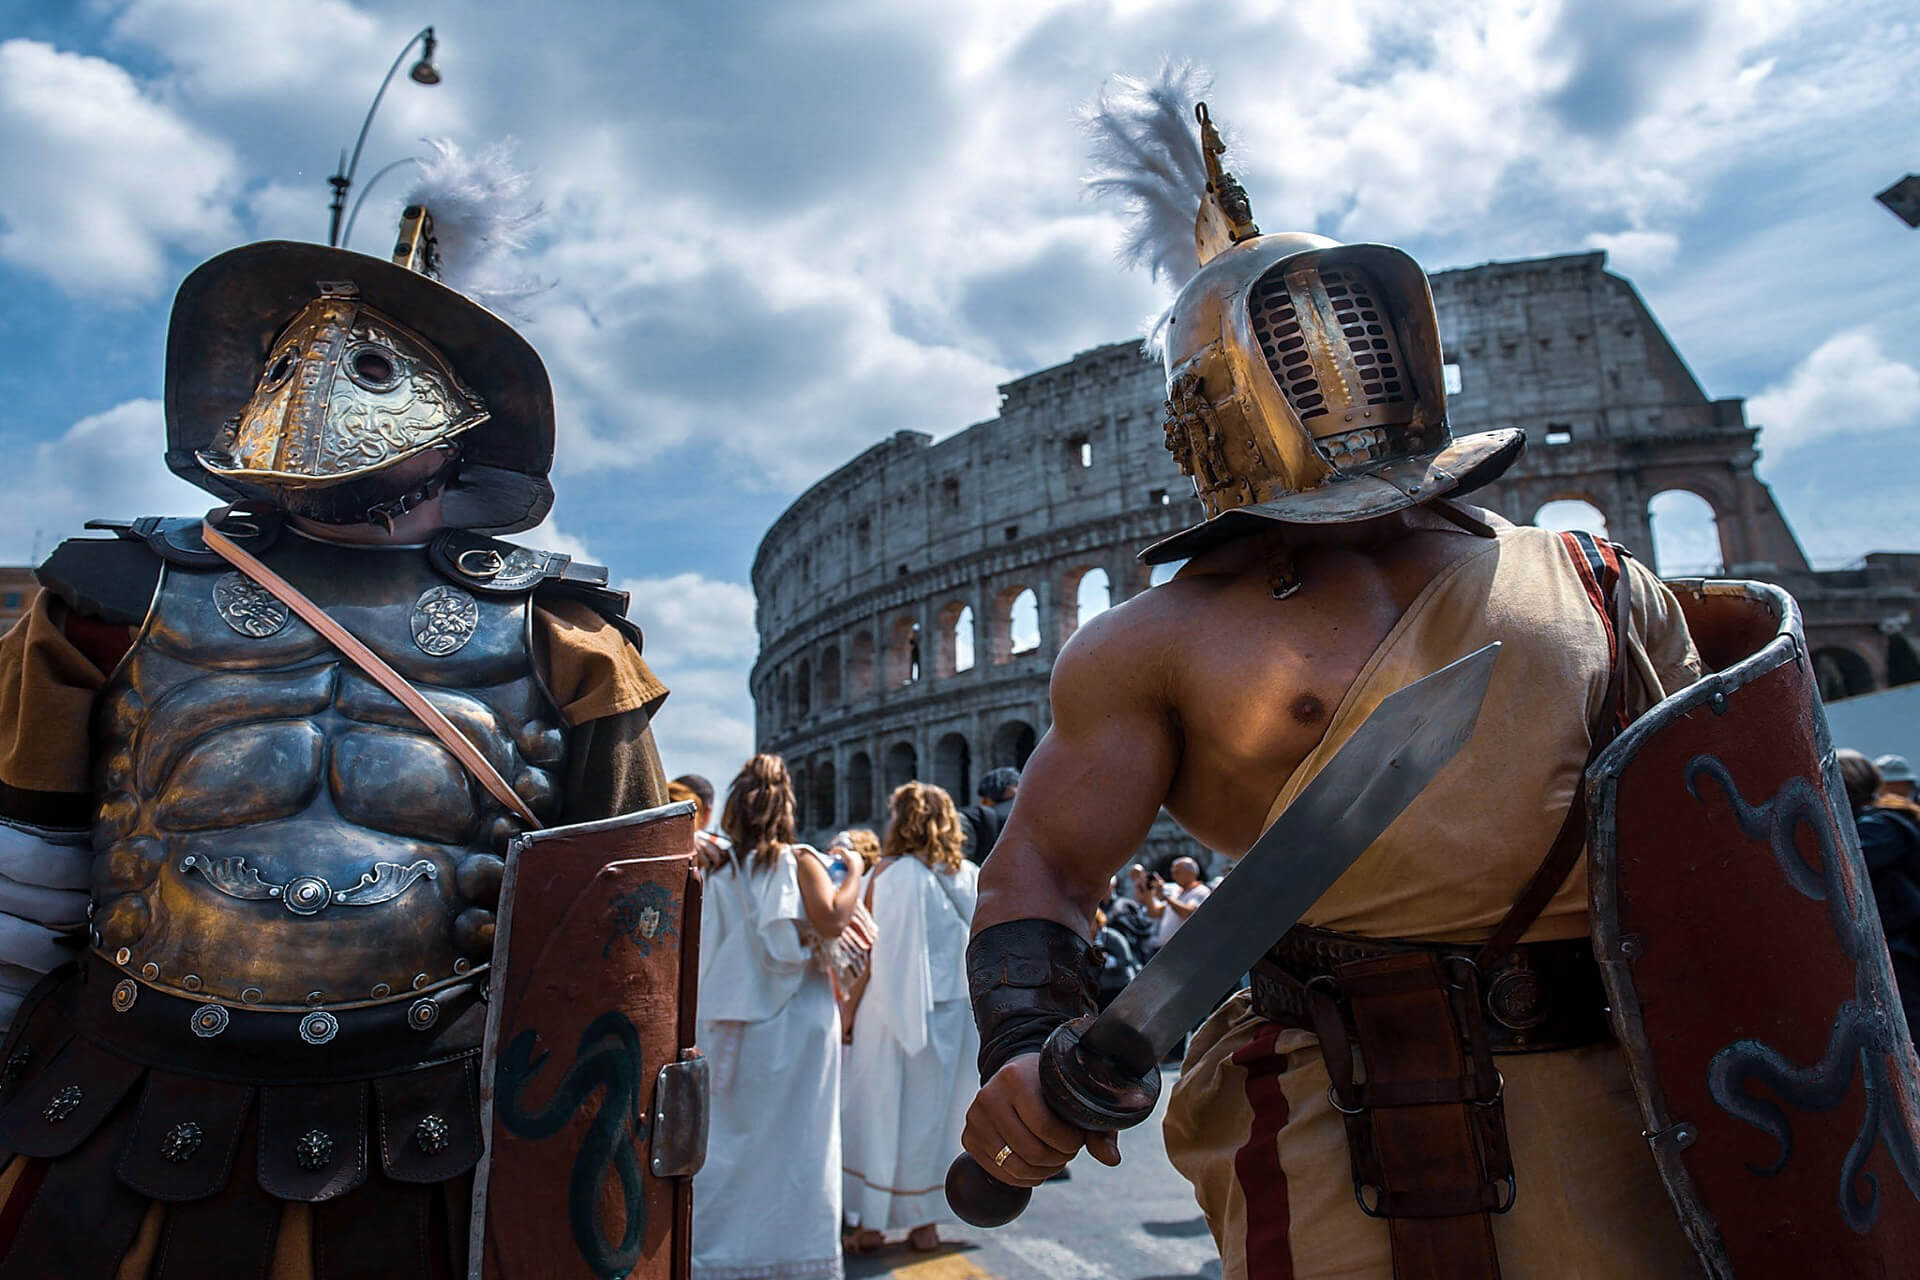 Training to become a gladiator in Rome